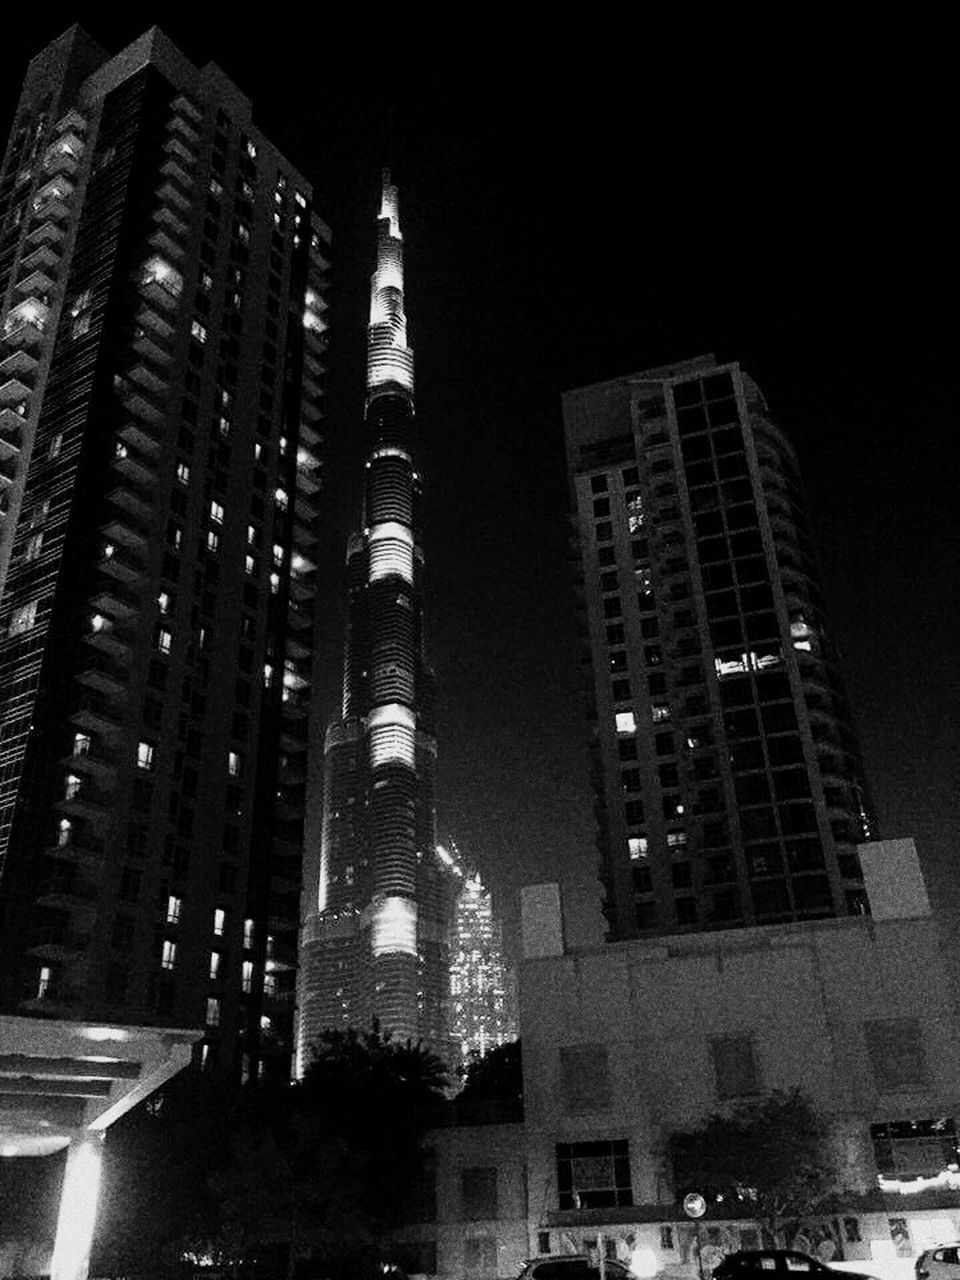 architecture, building exterior, night, built structure, city, illuminated, skyscraper, low angle view, no people, modern, outdoors, sky